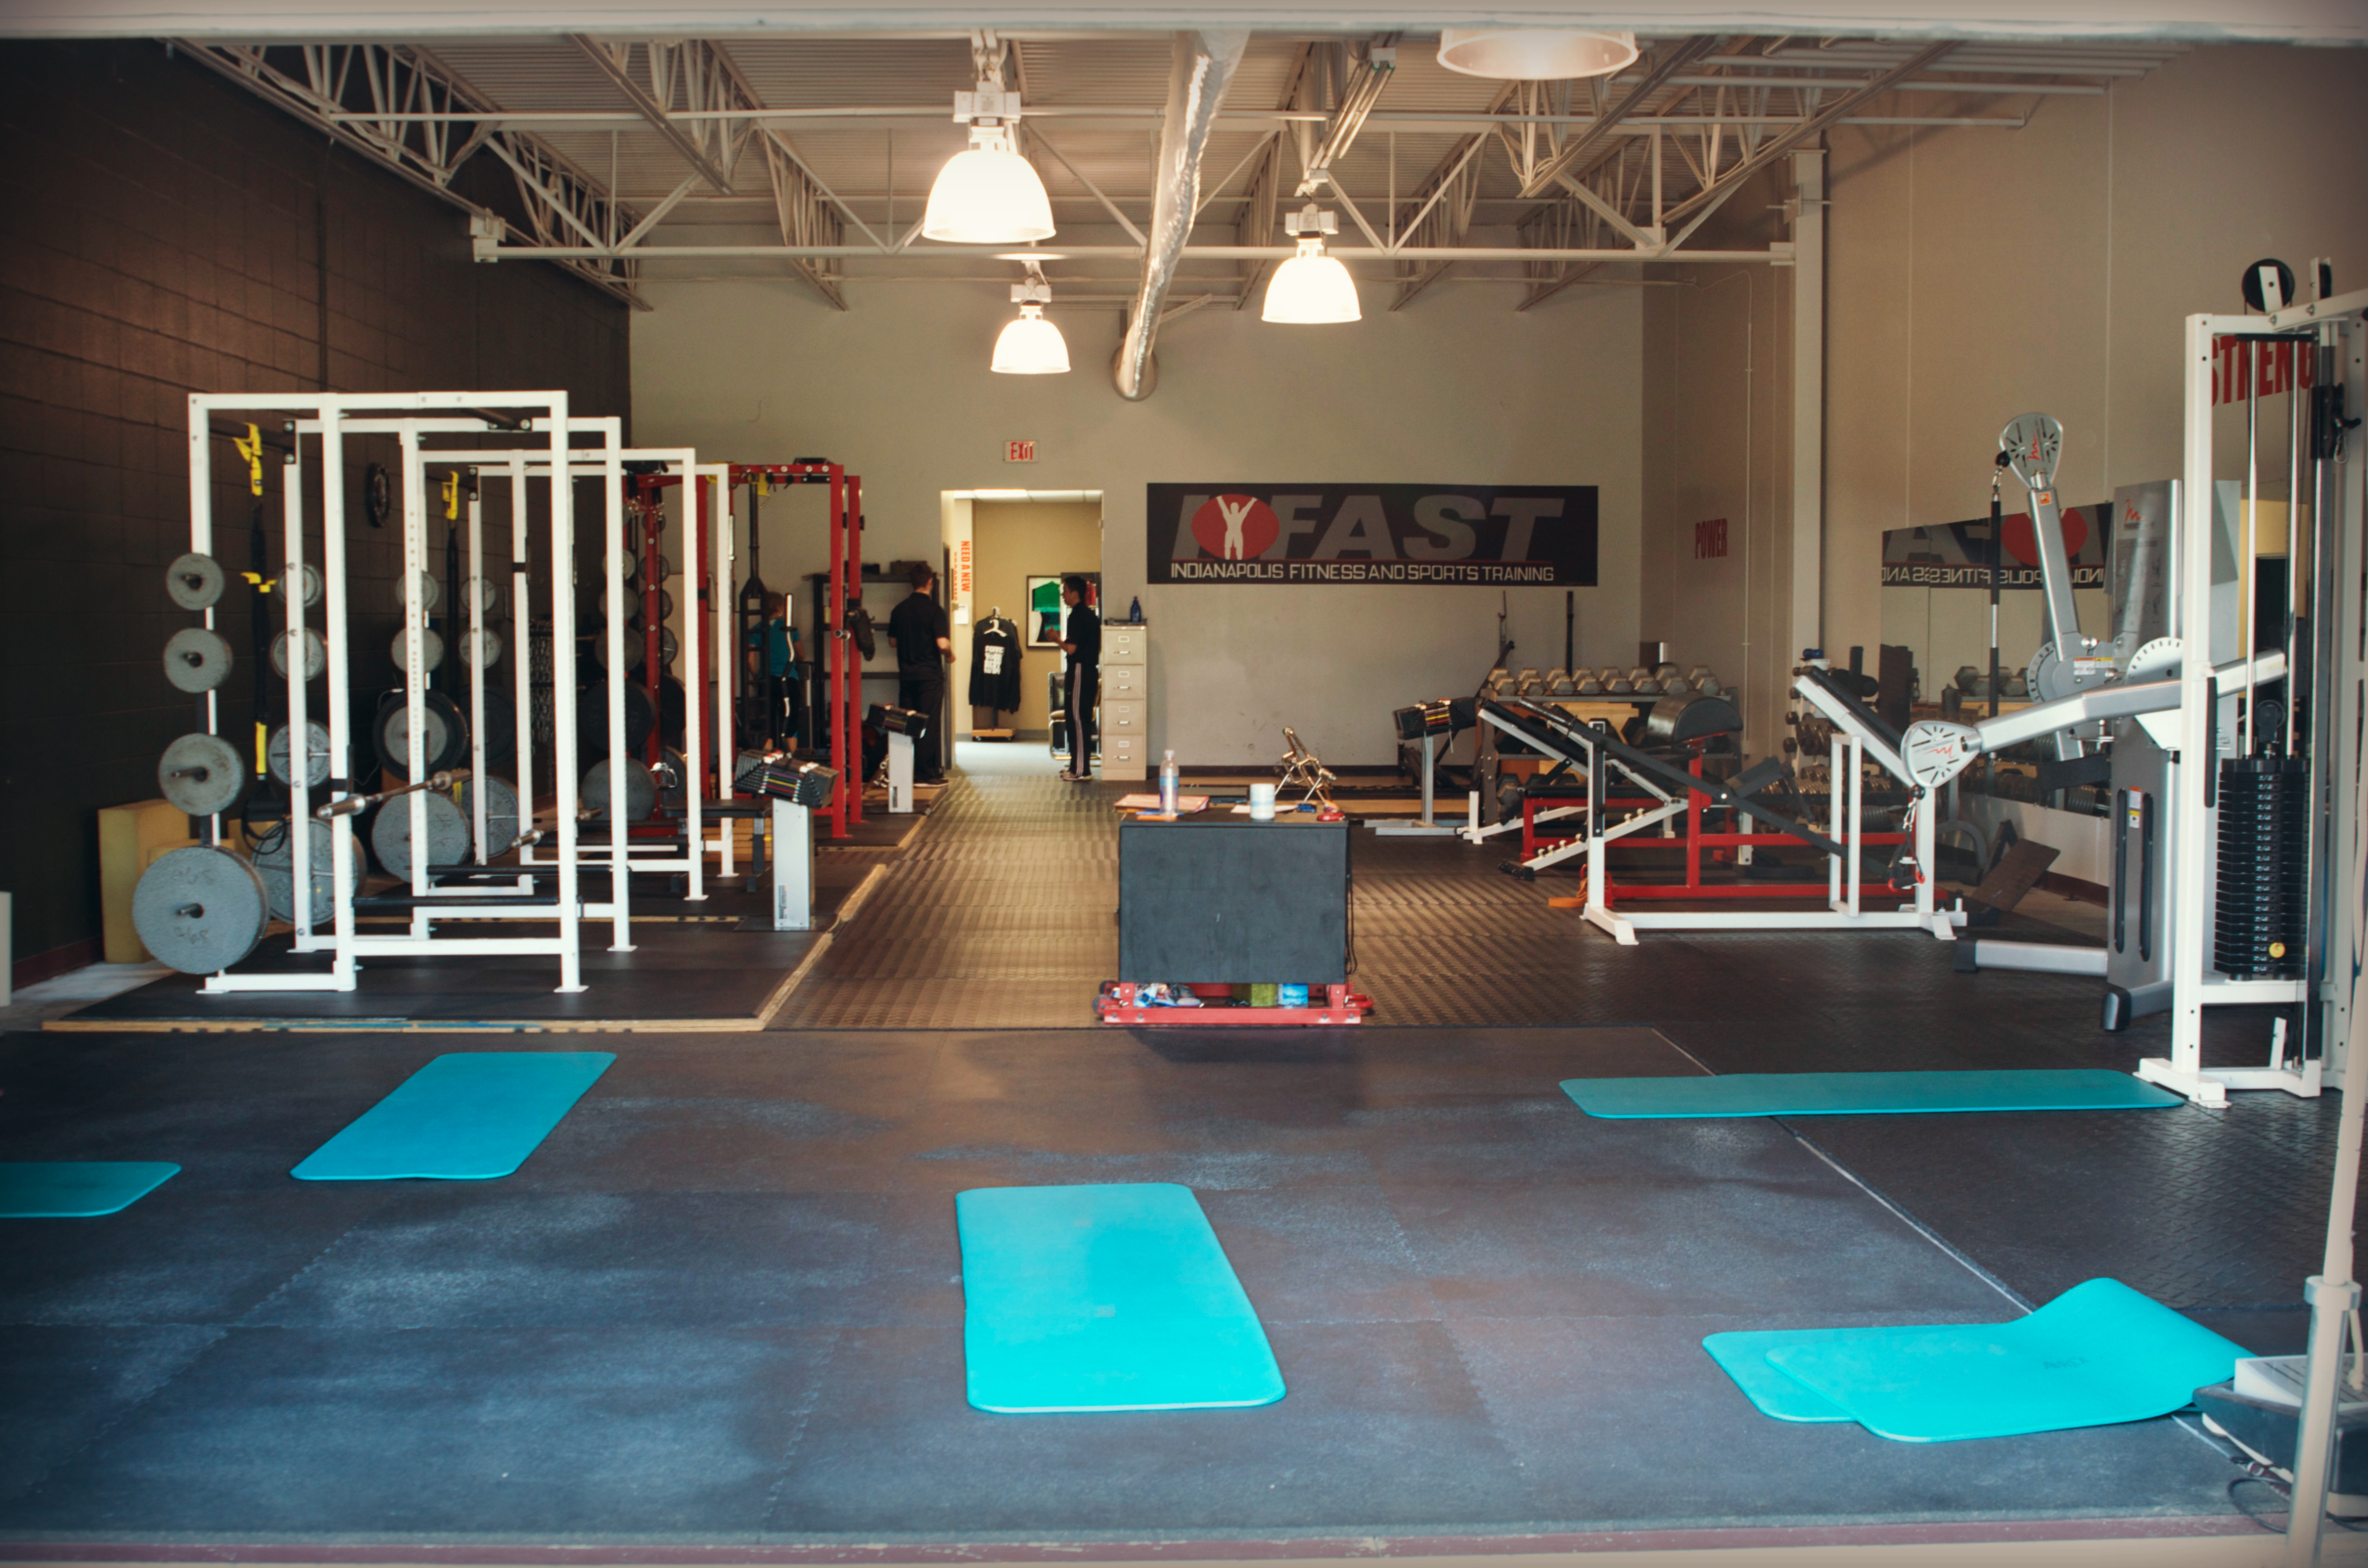 Indianapolis Fitness and Sports Training is a multiple award-winning gym owned by Fishers residents. (Photo by Emily Schwank of Raincliffs Photography)